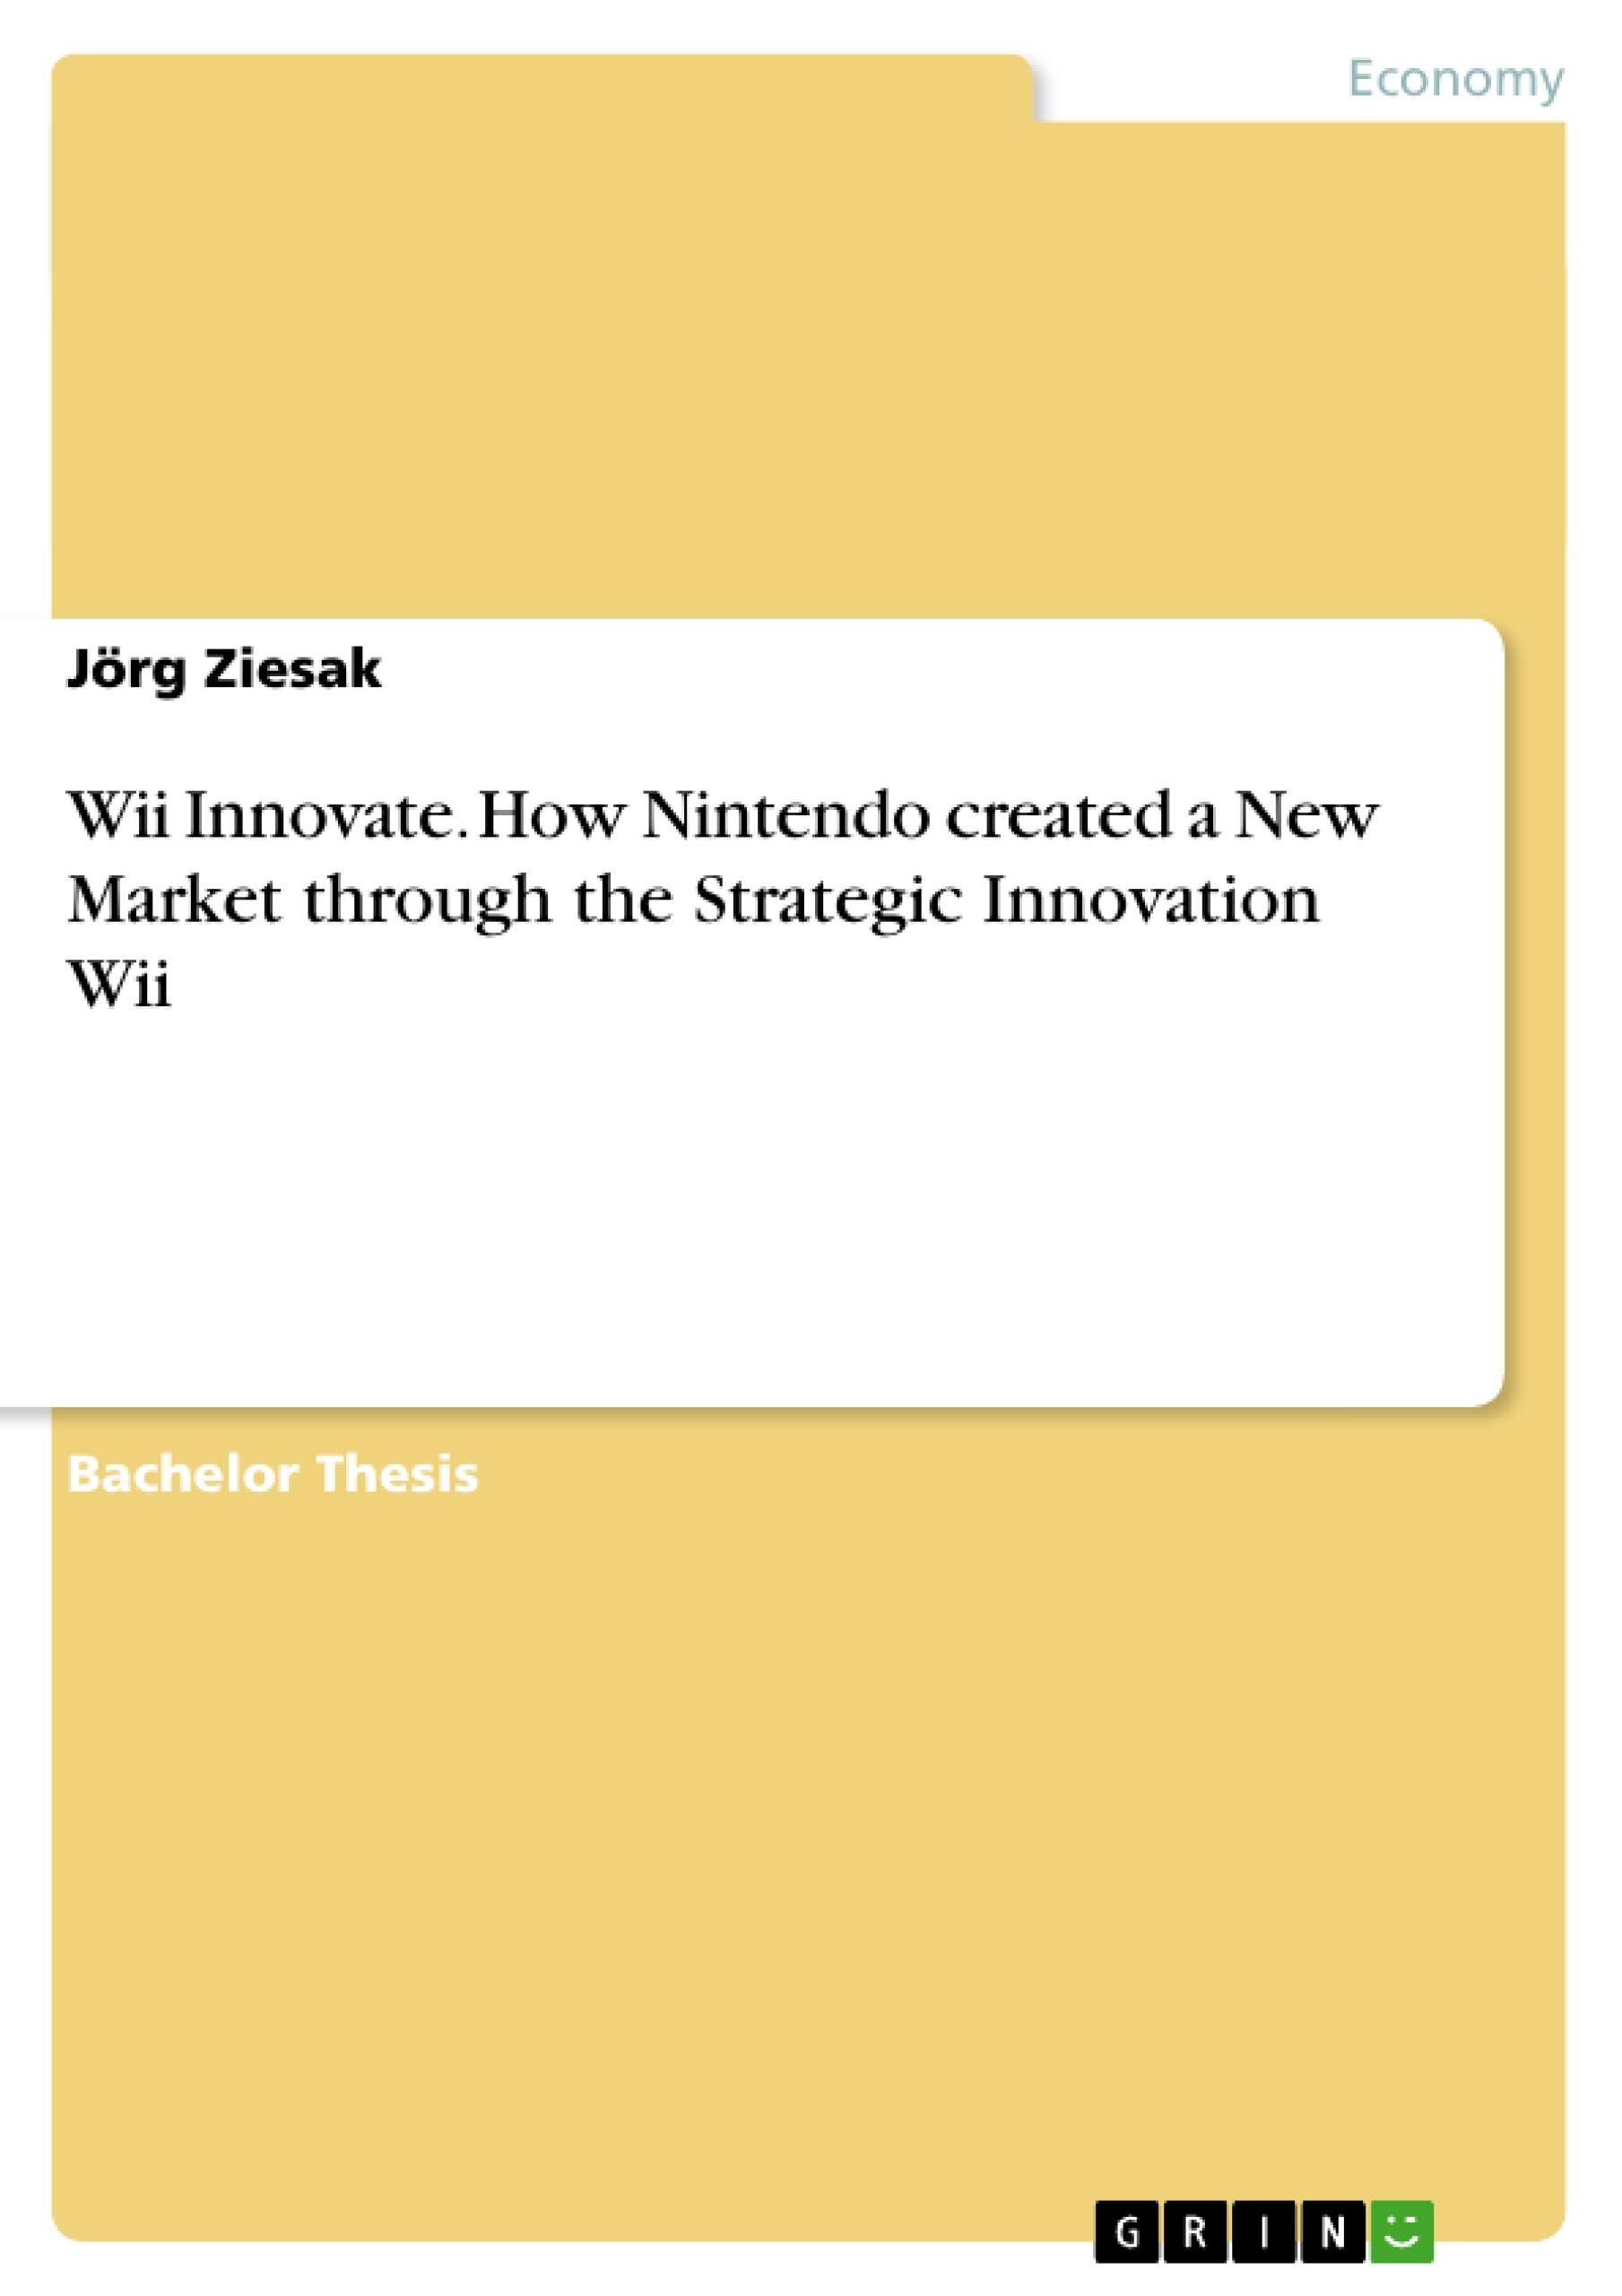 Title: Wii Innovate. How Nintendo created a New Market through the Strategic Innovation Wii